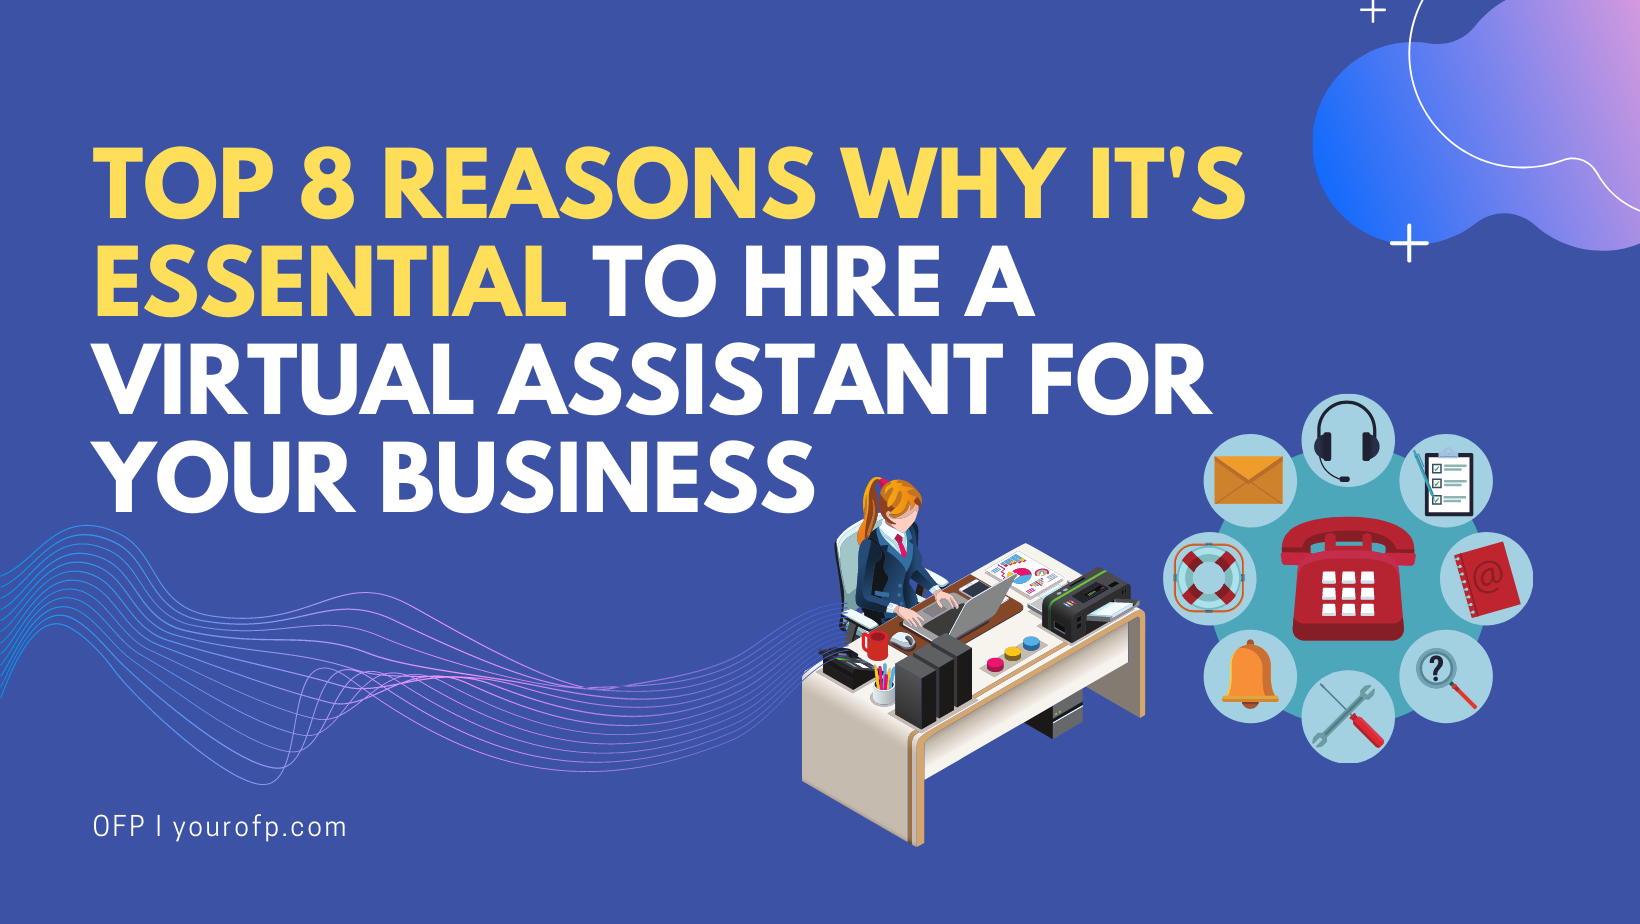 Top 8 Reasons Why It's Essential To Hire A Virtual Assistant For Your Business